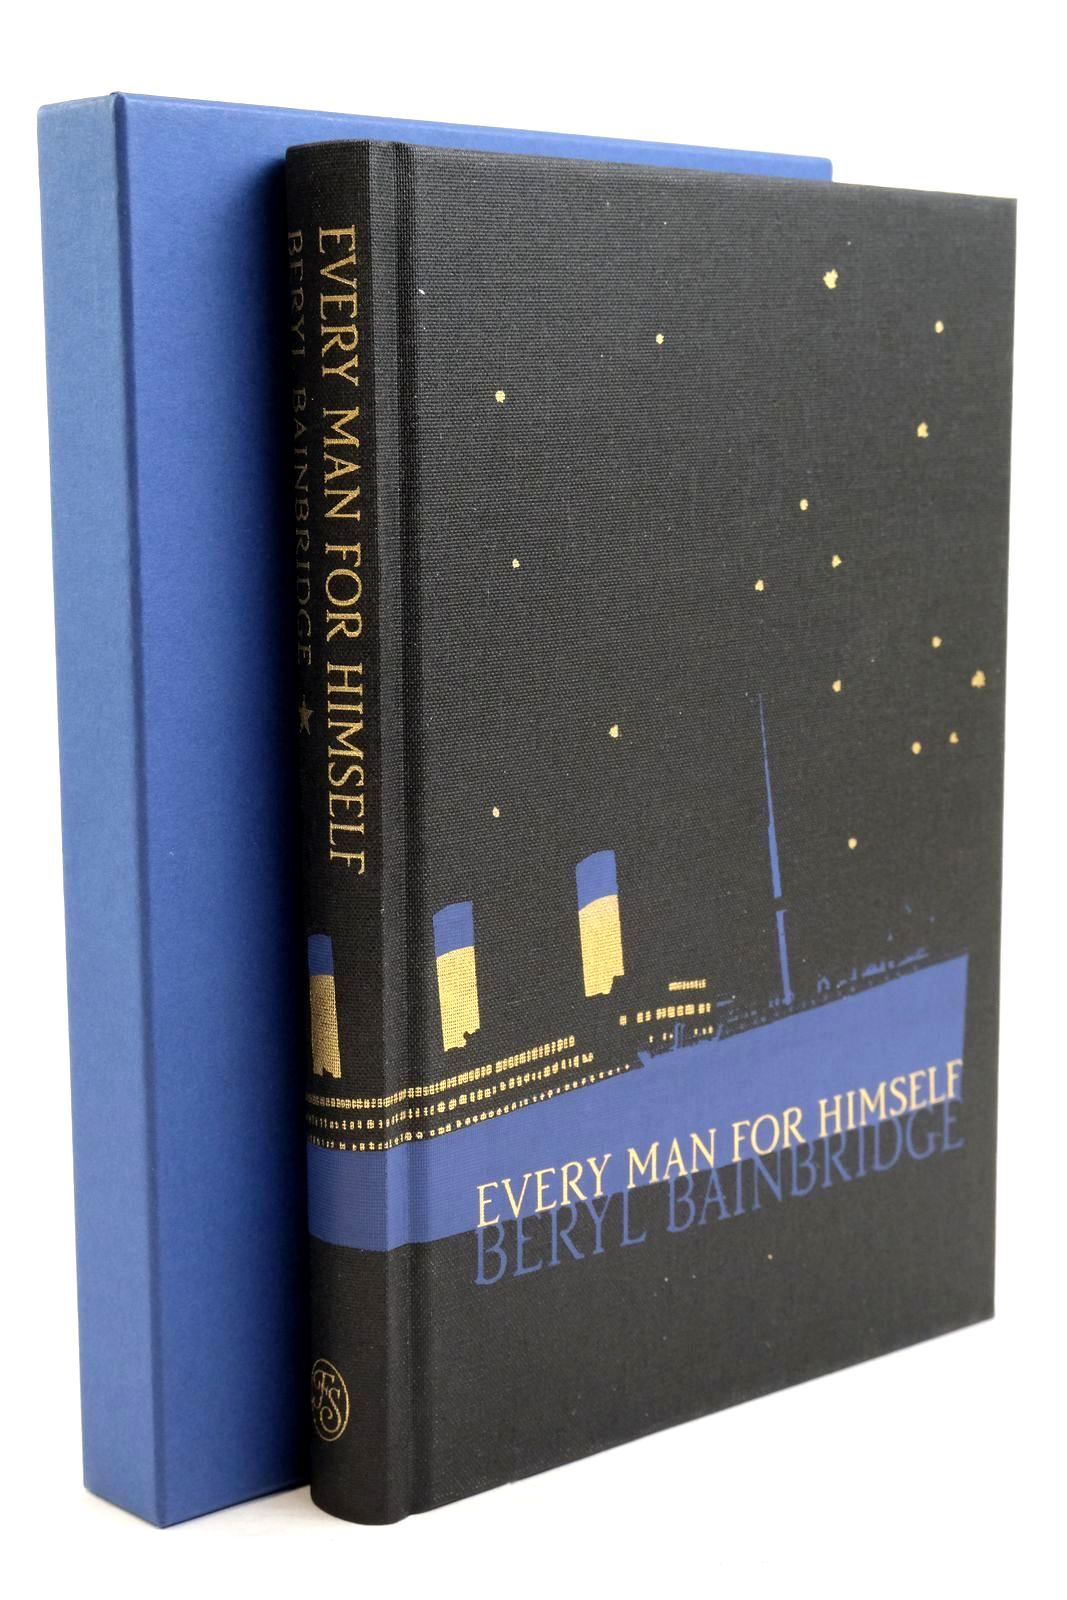 Photo of EVERY MAN FOR HIMSELF written by Bainbridge, Beryl illustrated by Bainbridge, Beryl published by Folio Society (STOCK CODE: 1320728)  for sale by Stella & Rose's Books